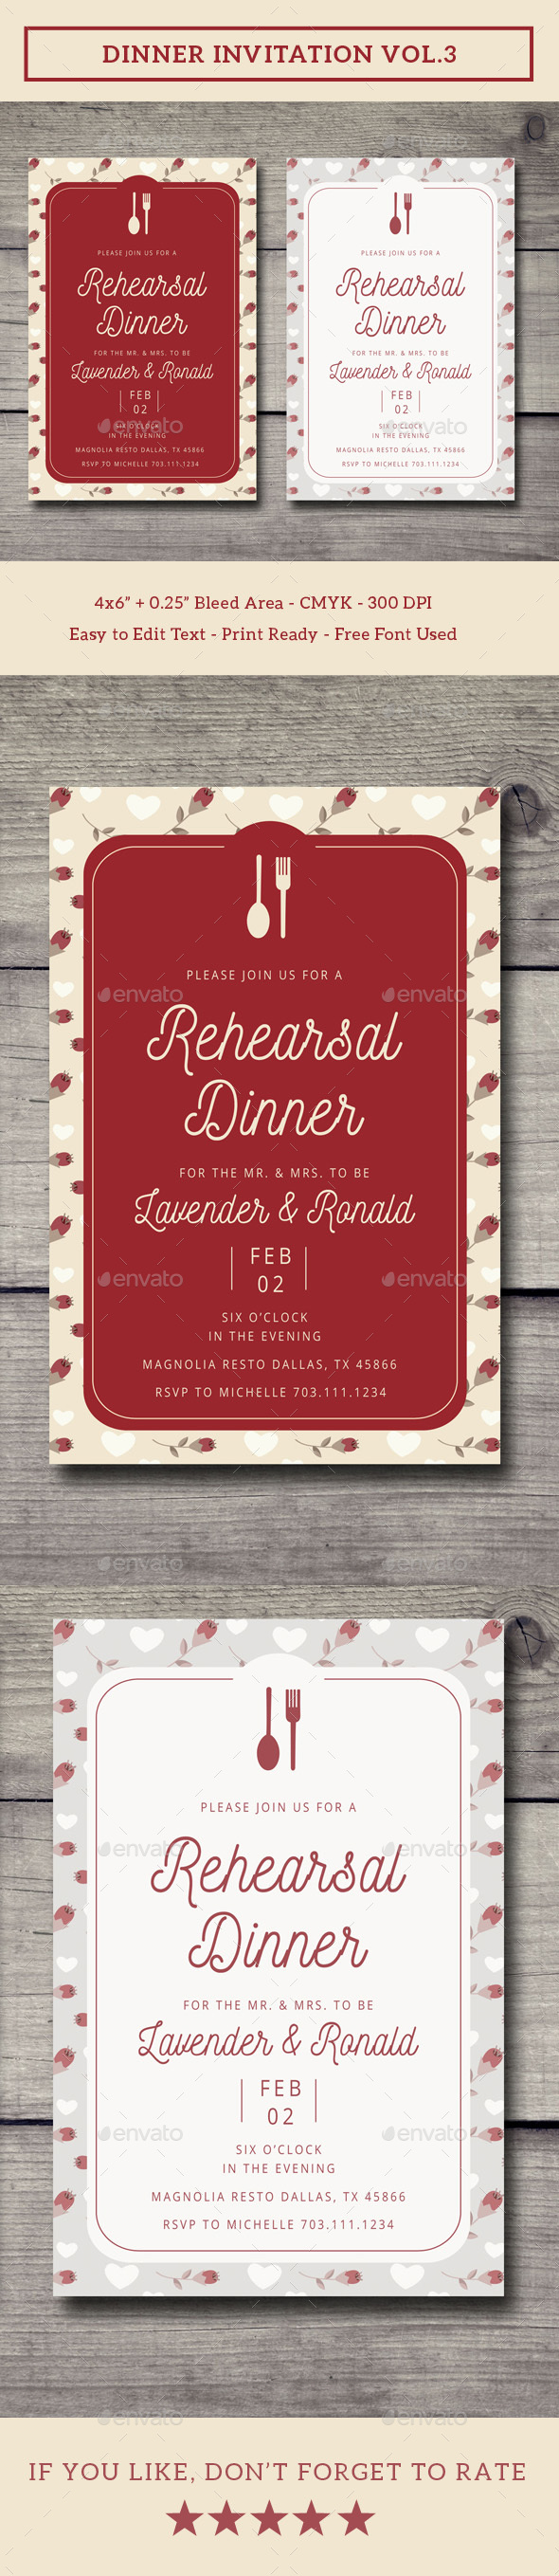 Dinner Card Designs & Invite Templates from GraphicRiver